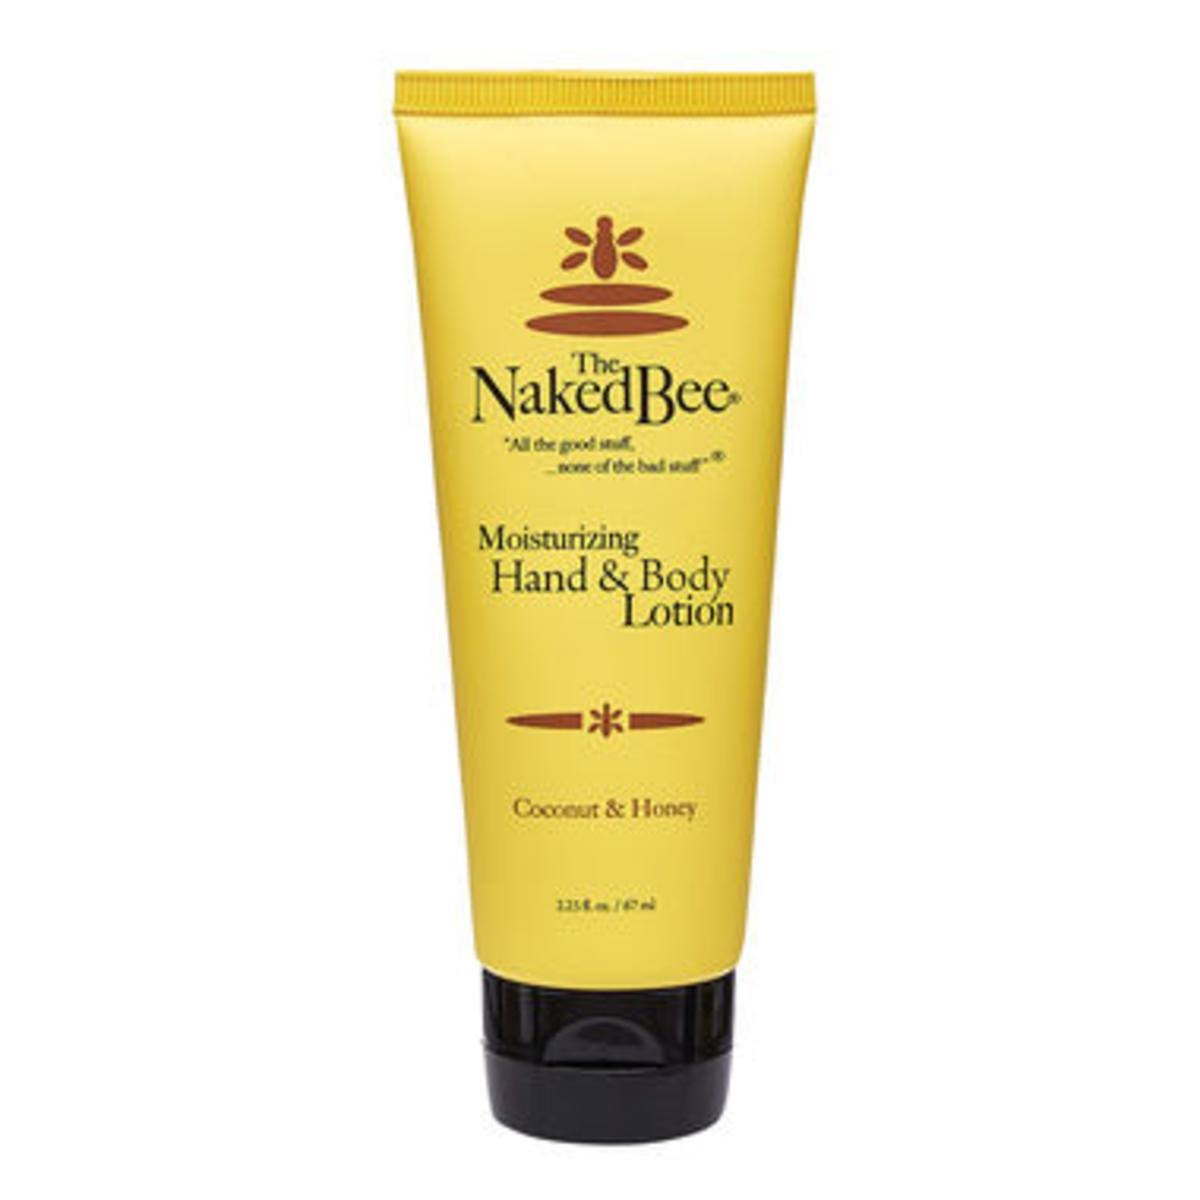 The Naked Bee Moisturizing Hand and Body Lotion - Coconut & Honey